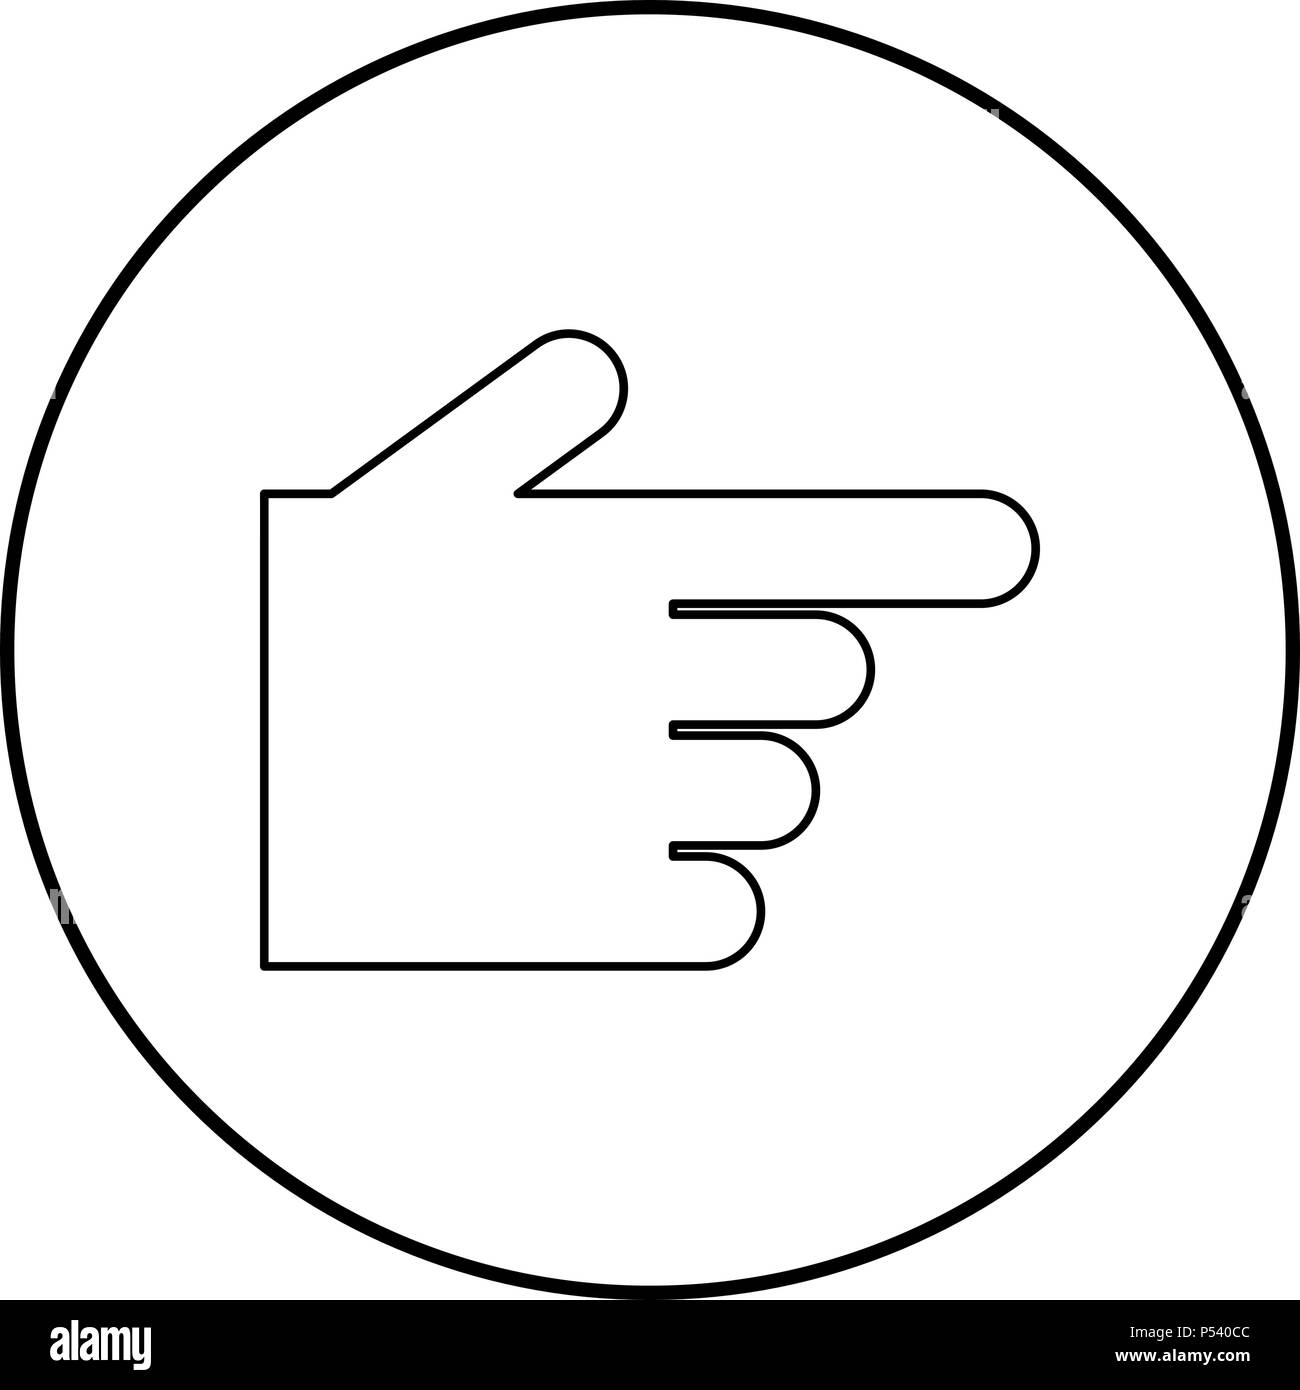 Pointing hand icon black color in circle round outline - Stock Image